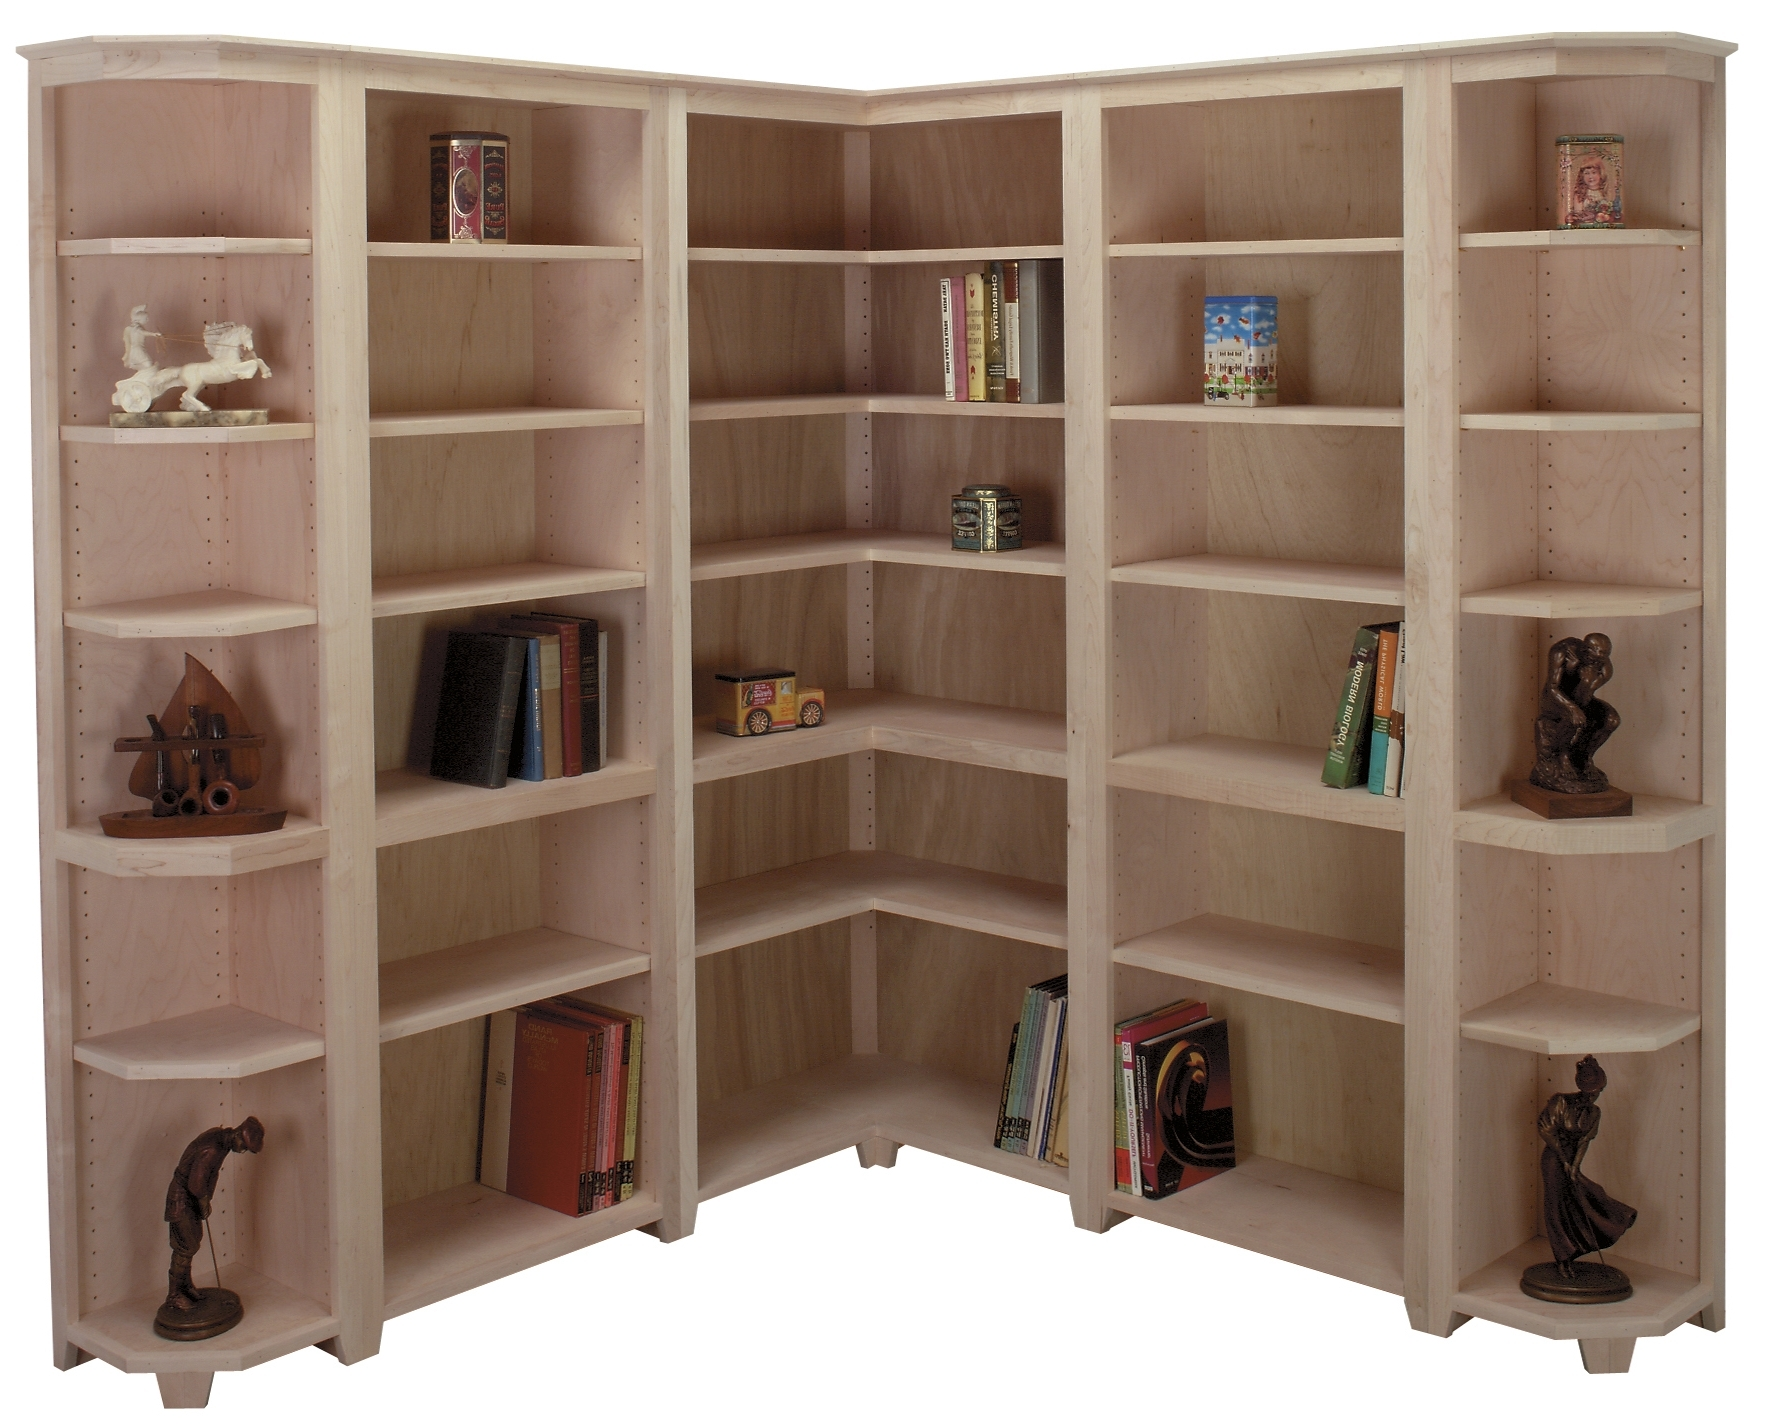 Current Cheap Bookcases Throughout Bookshelf: Cheap Bookshelf 2017 Contemporary Design Solid Wood (View 6 of 15)